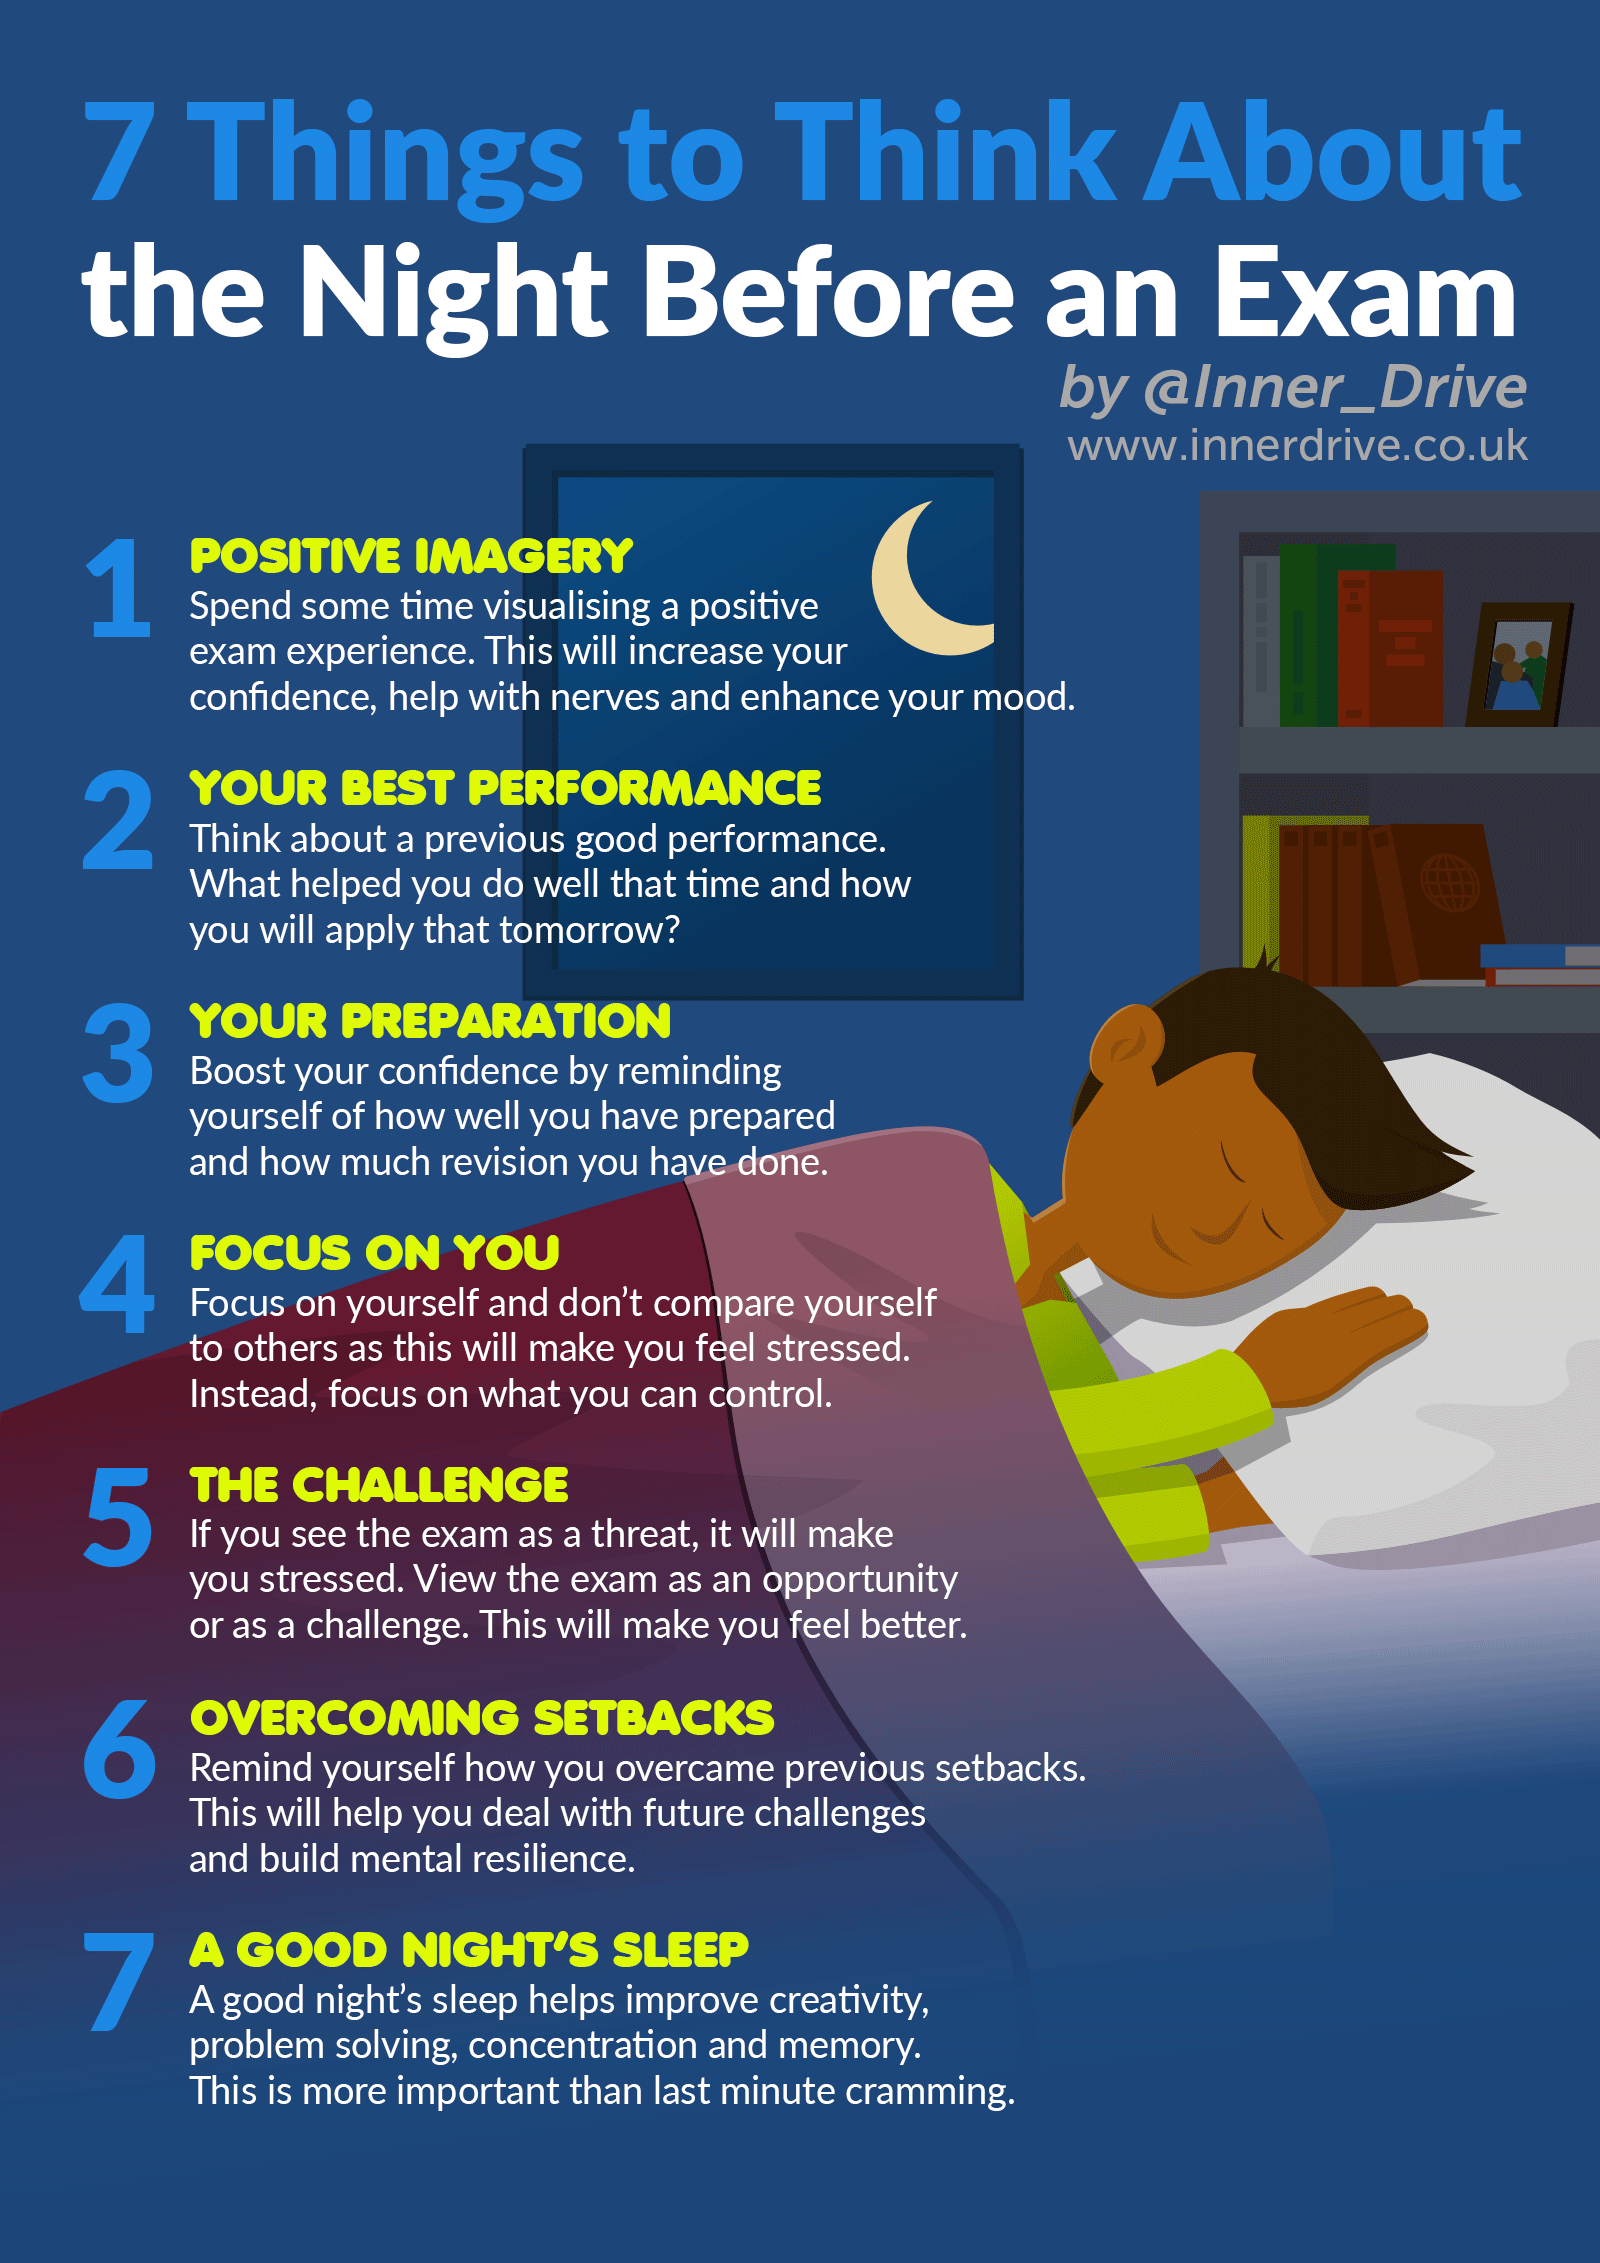 www.innerdrive.co.uk What should students be thinking about the night before an exam (apart from ...